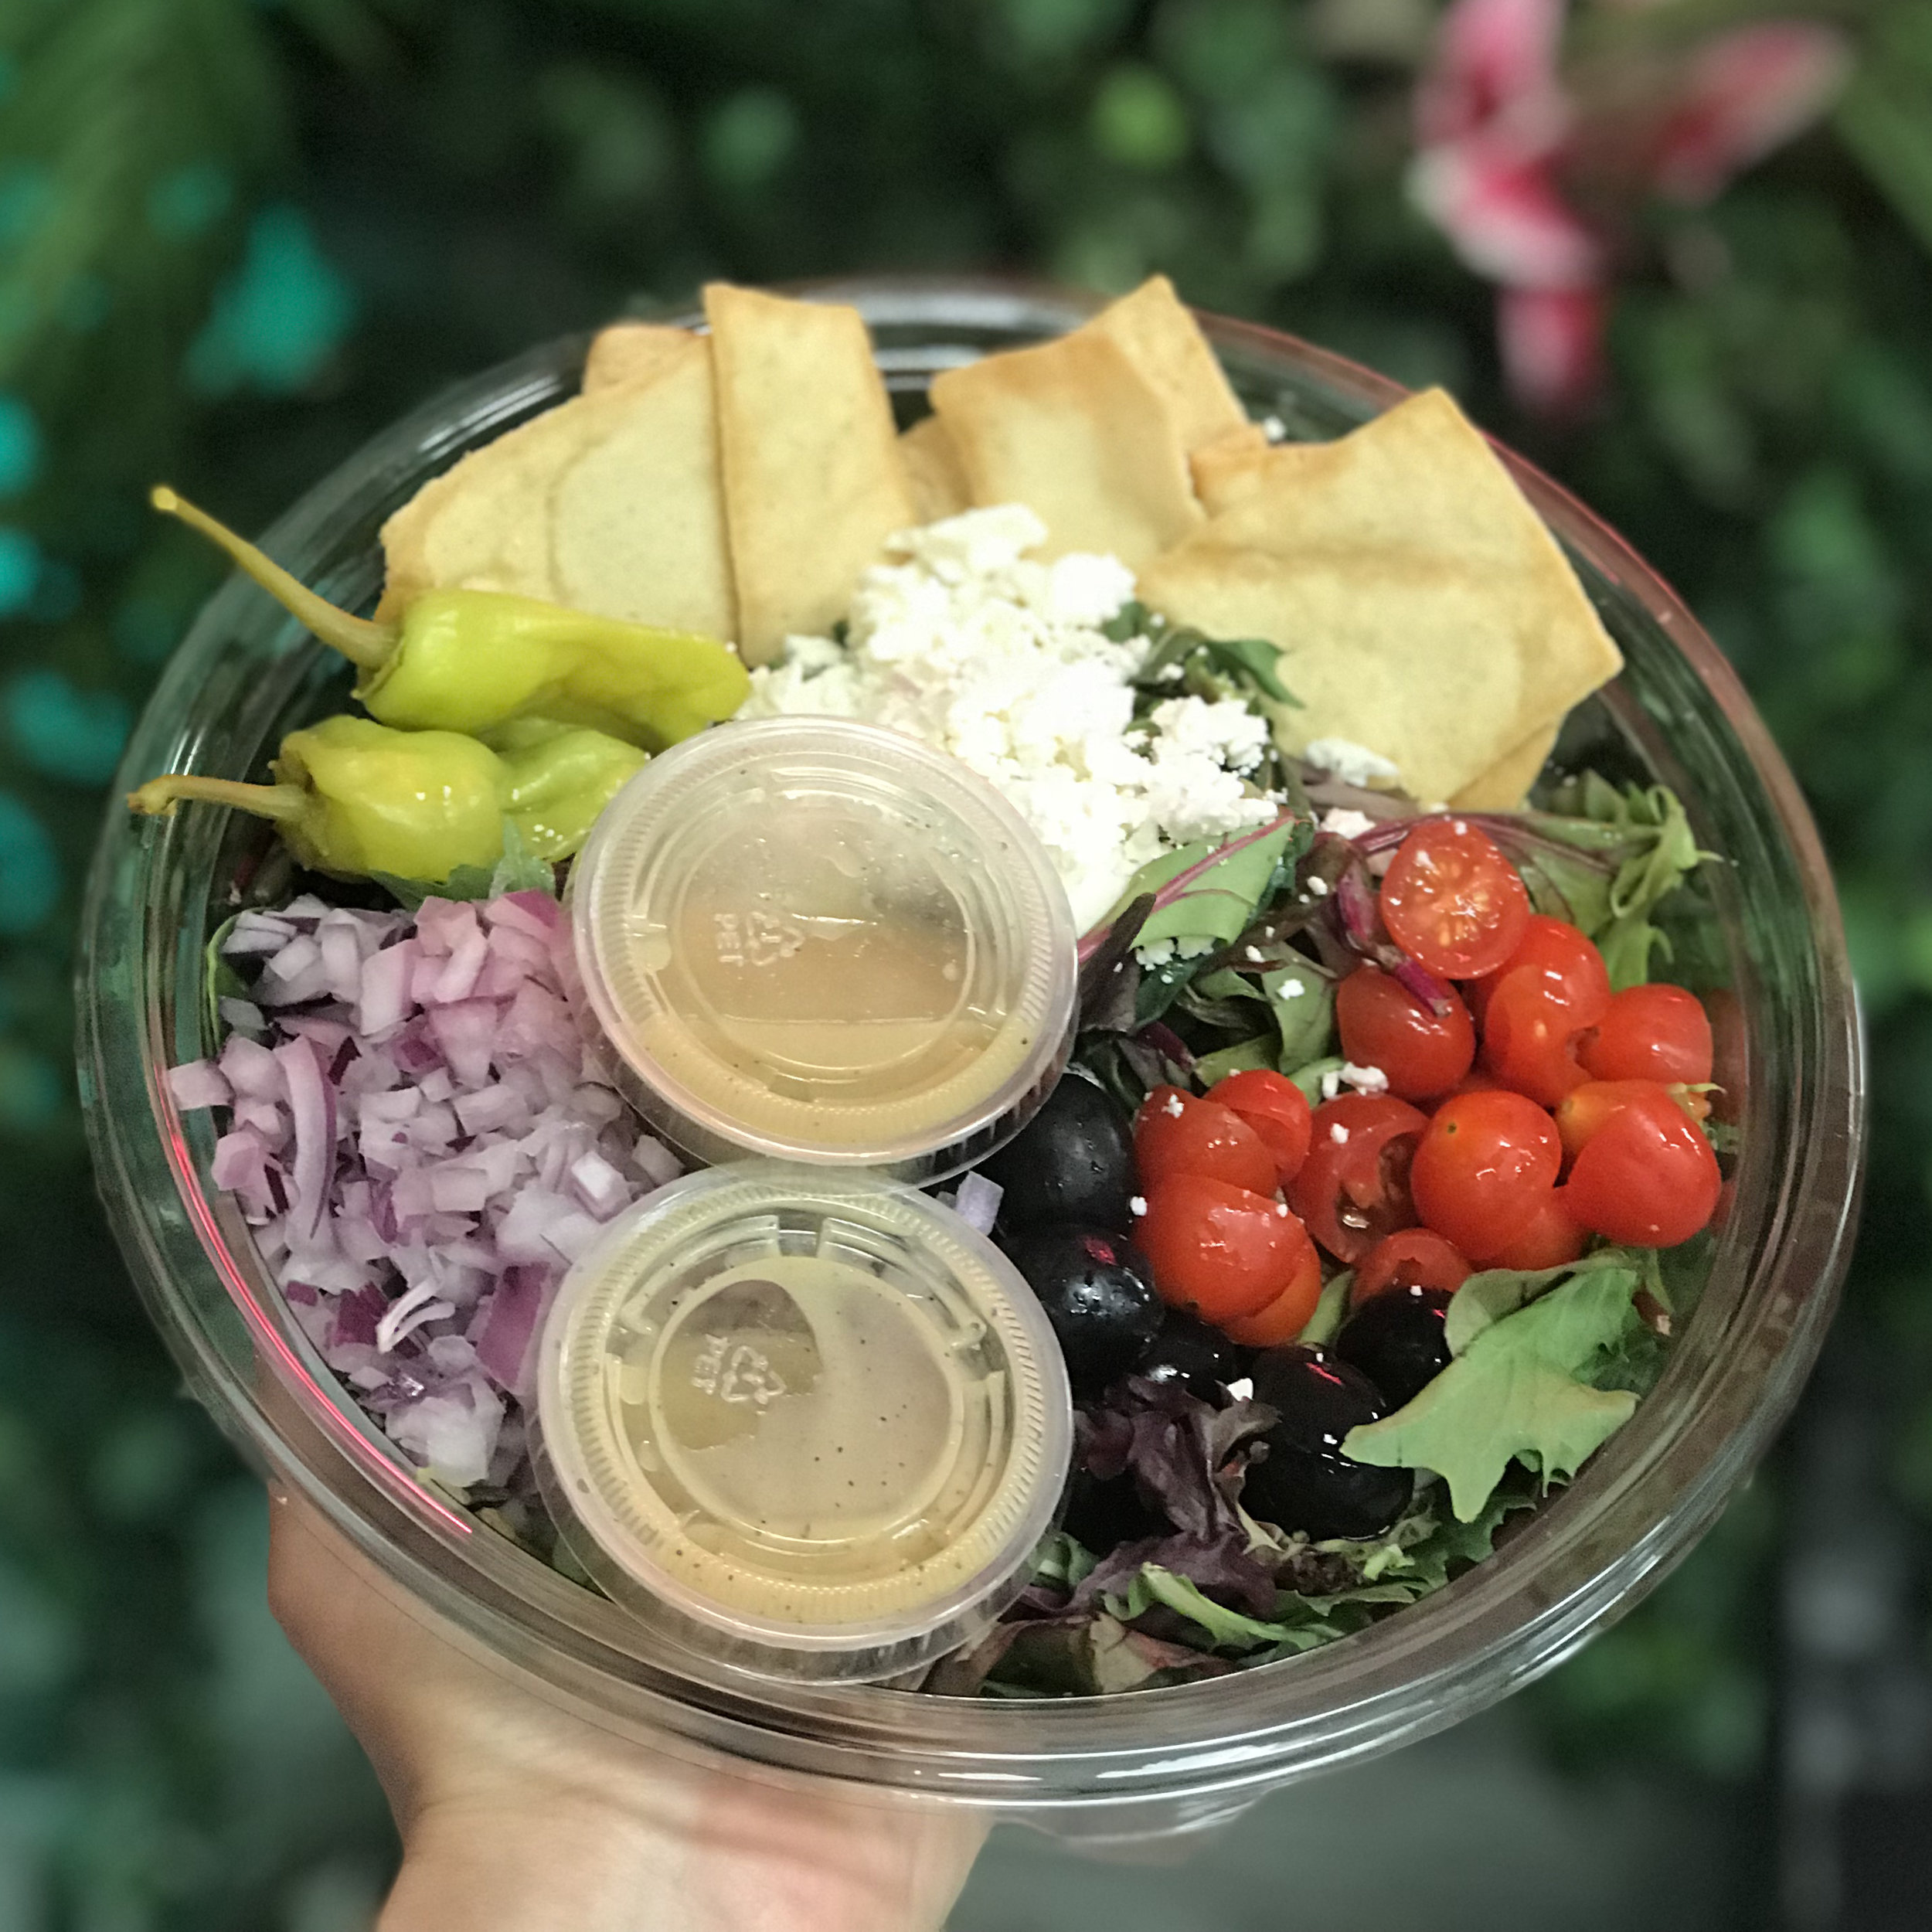 OUR SALADS - Made with the freshest ingredients and dressings made in-house daily.